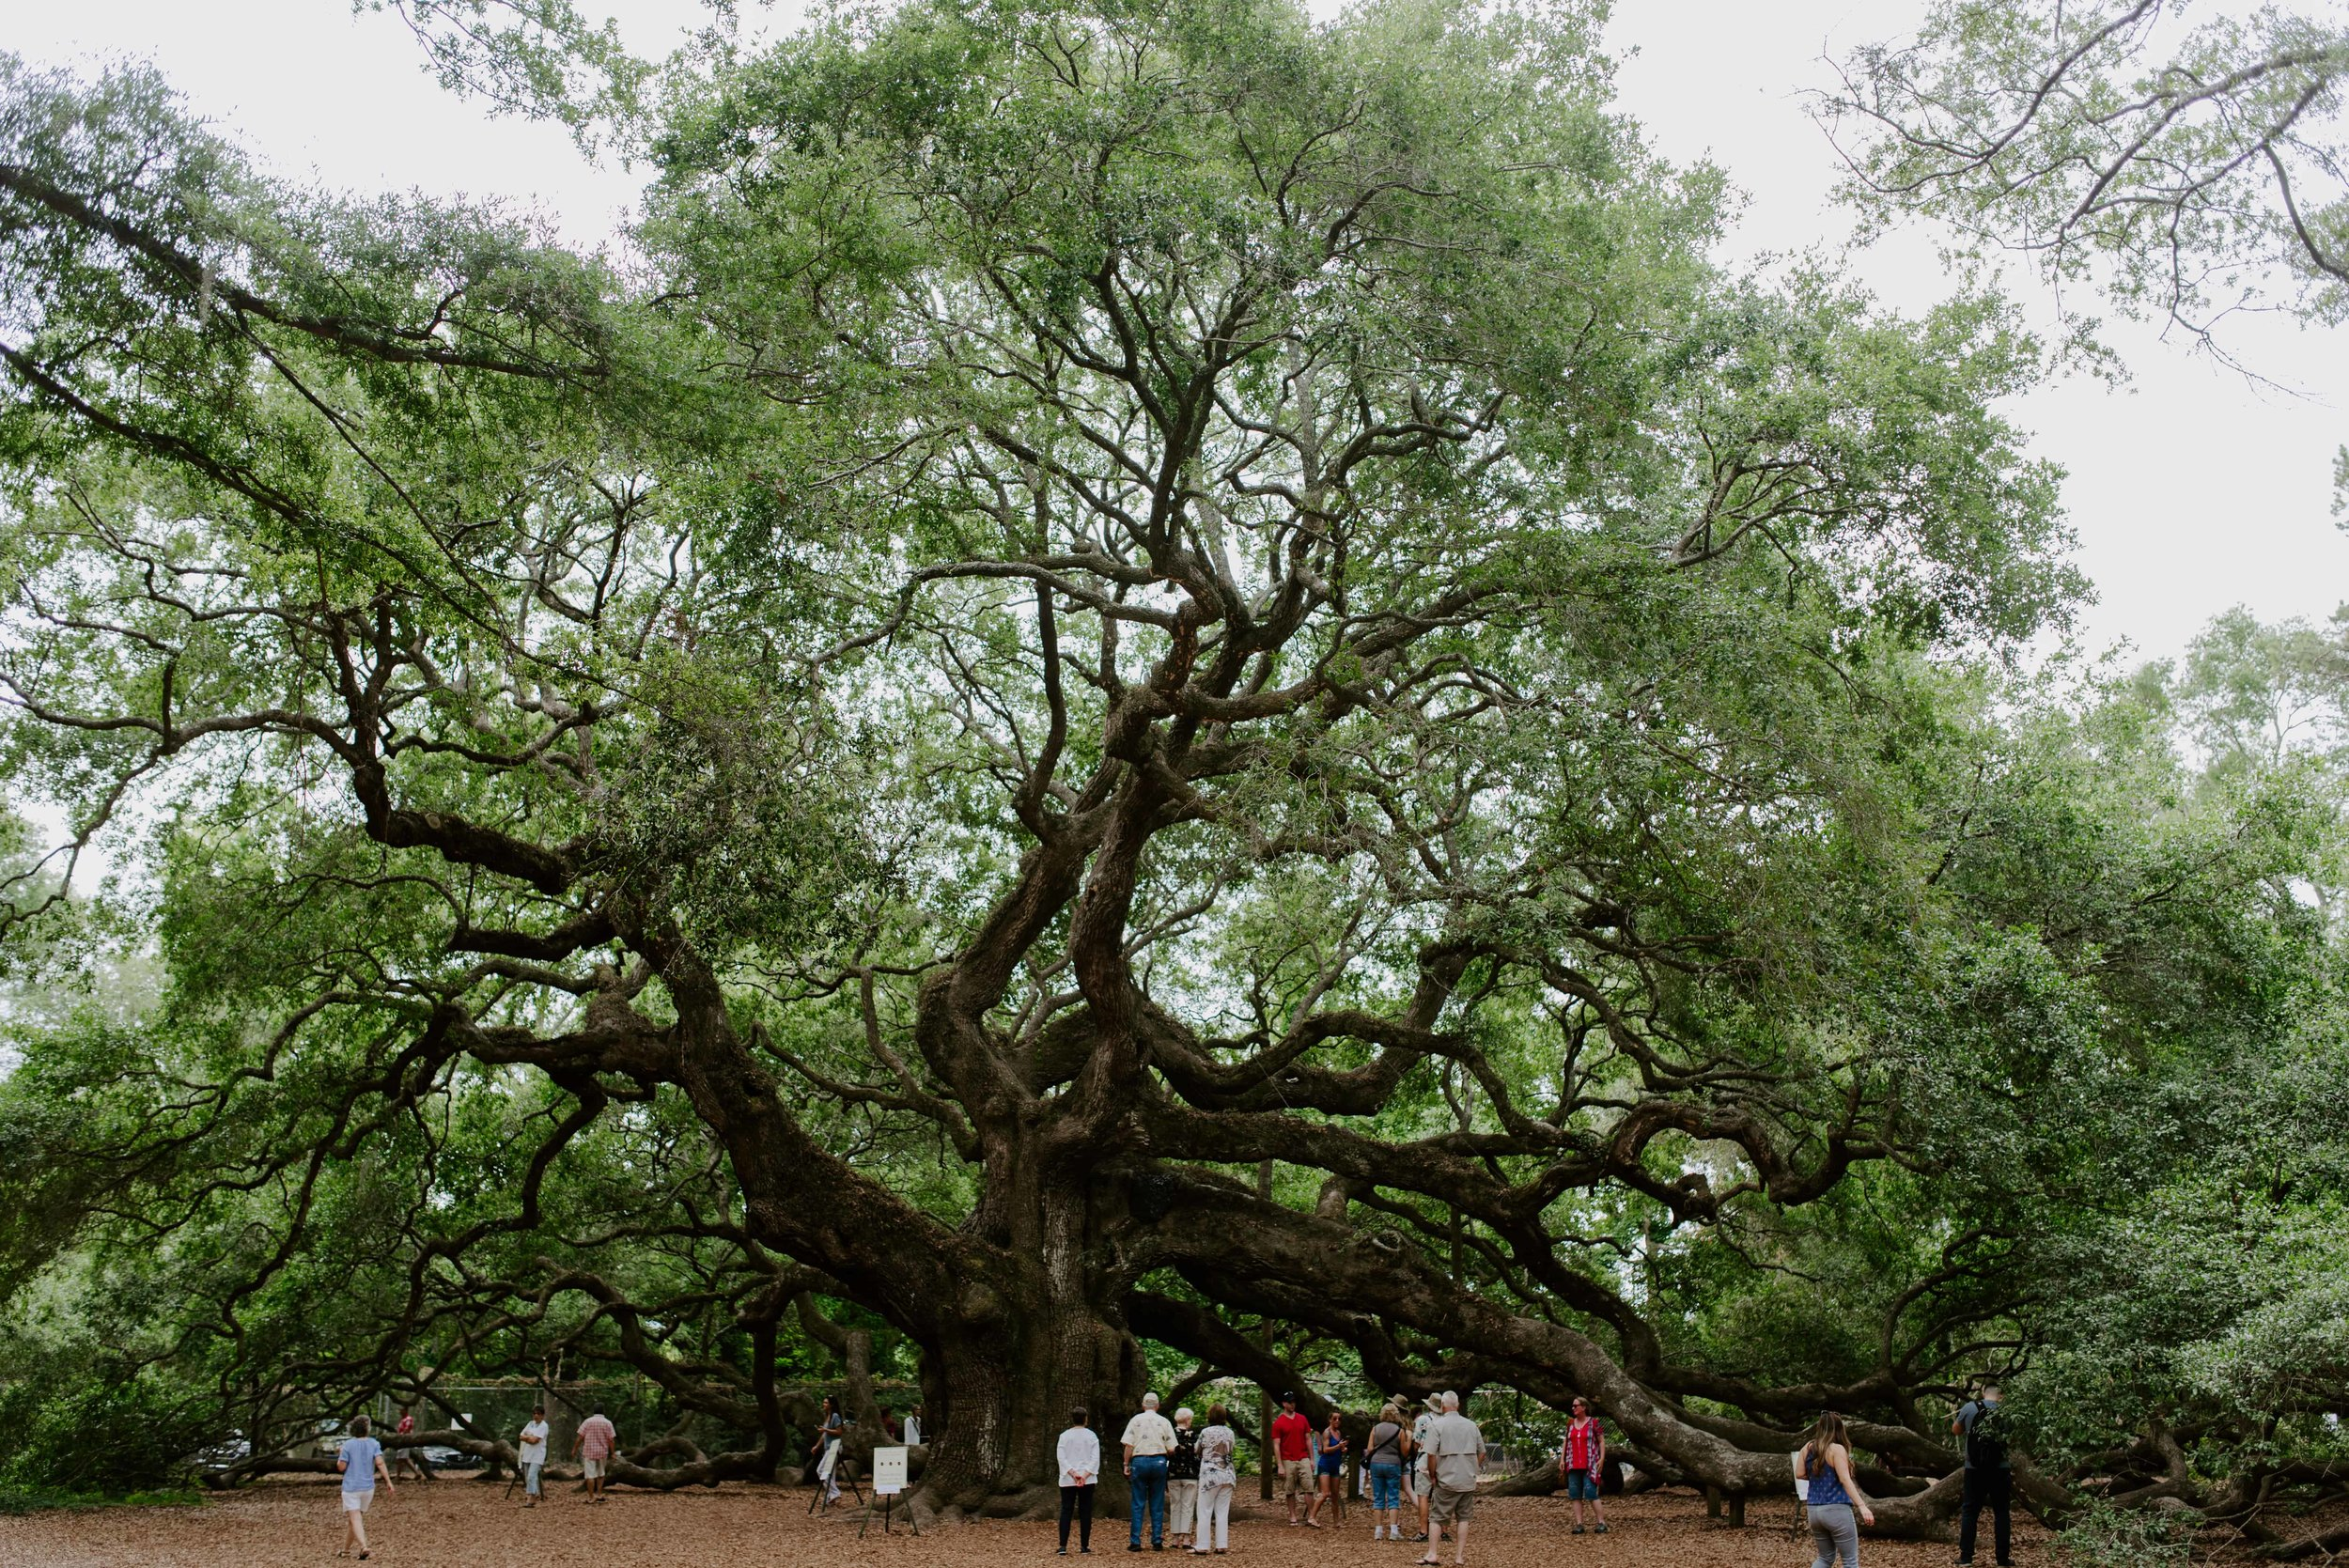 charleston-sc-city-guide-what-to-do-angel-oak-tree.jpg